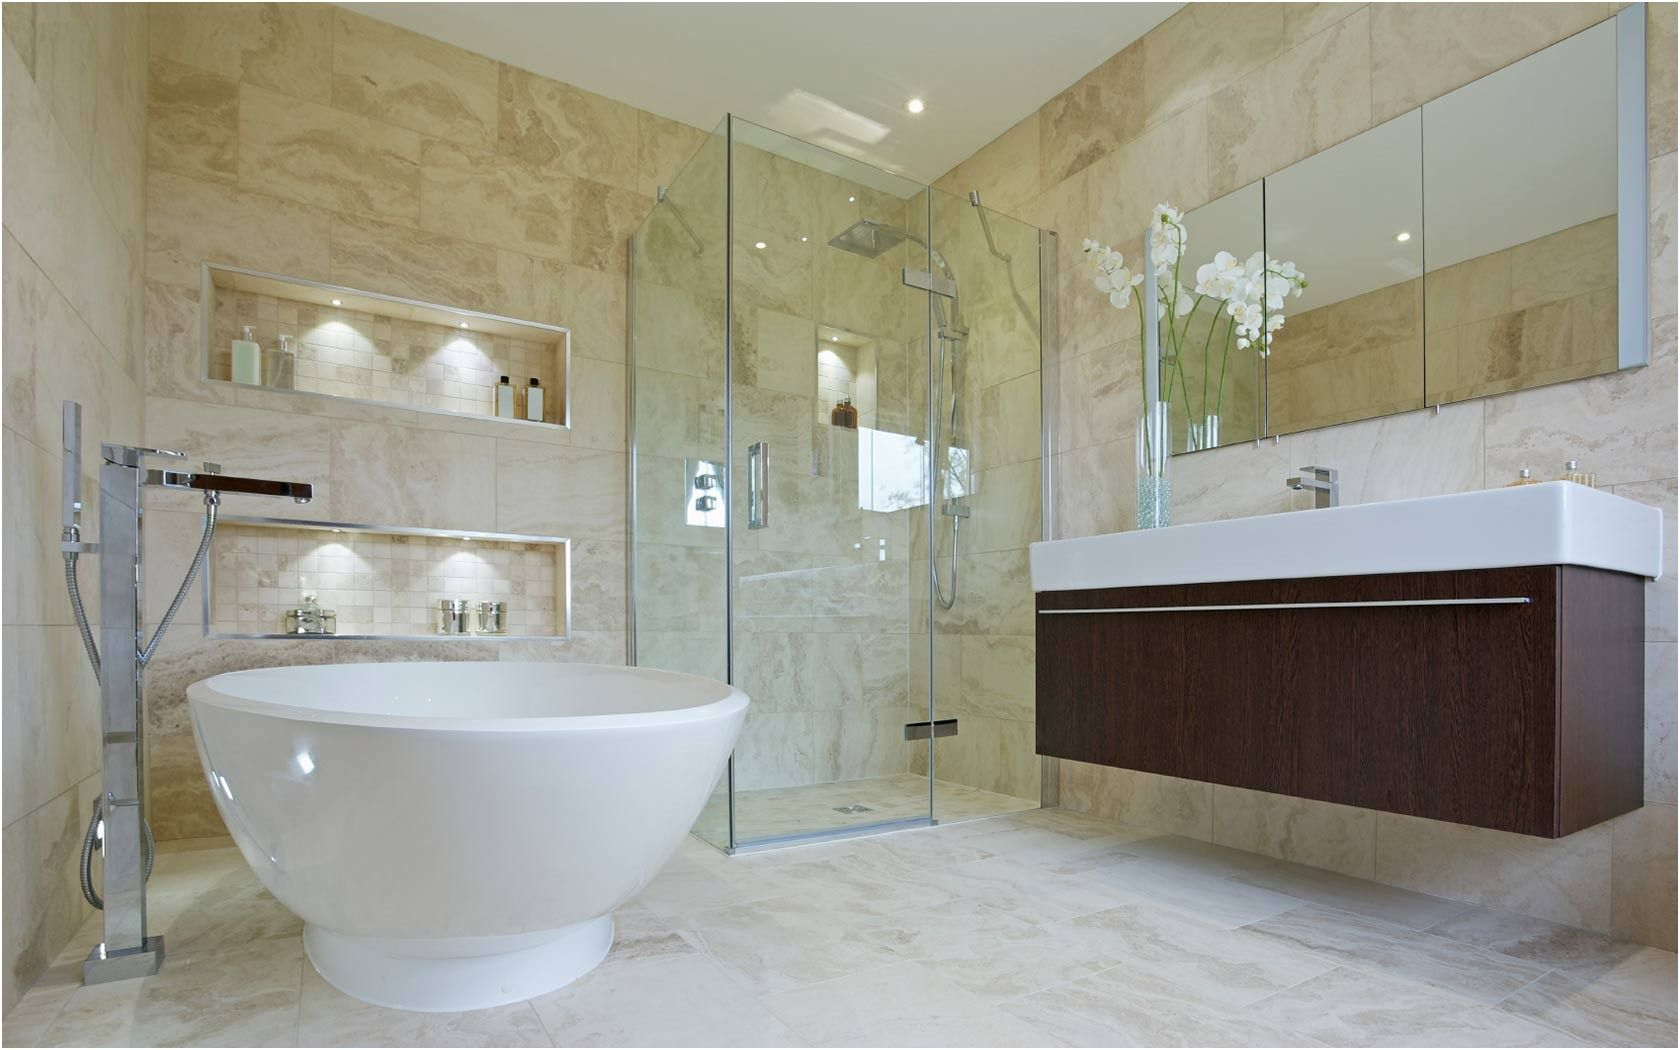 Best Photo Gallery For Website cost of bathroom fitter london bath fitters cost on inspirational from Designer Bathrooms London